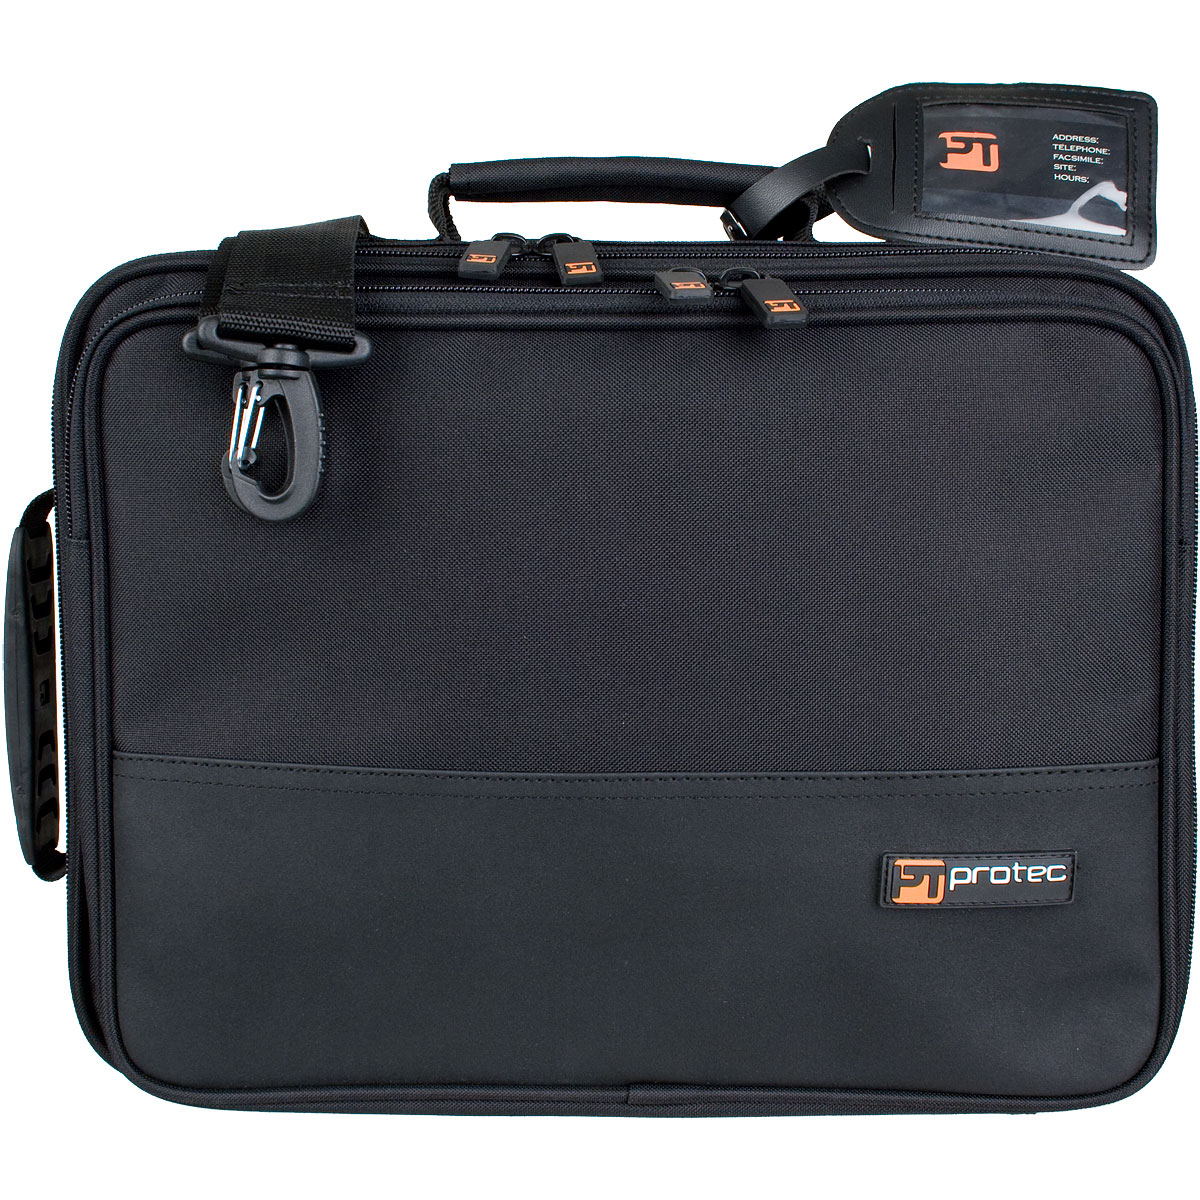 Protec Clarinet Case Cover Fits Buffet R13, E11 & similar cases